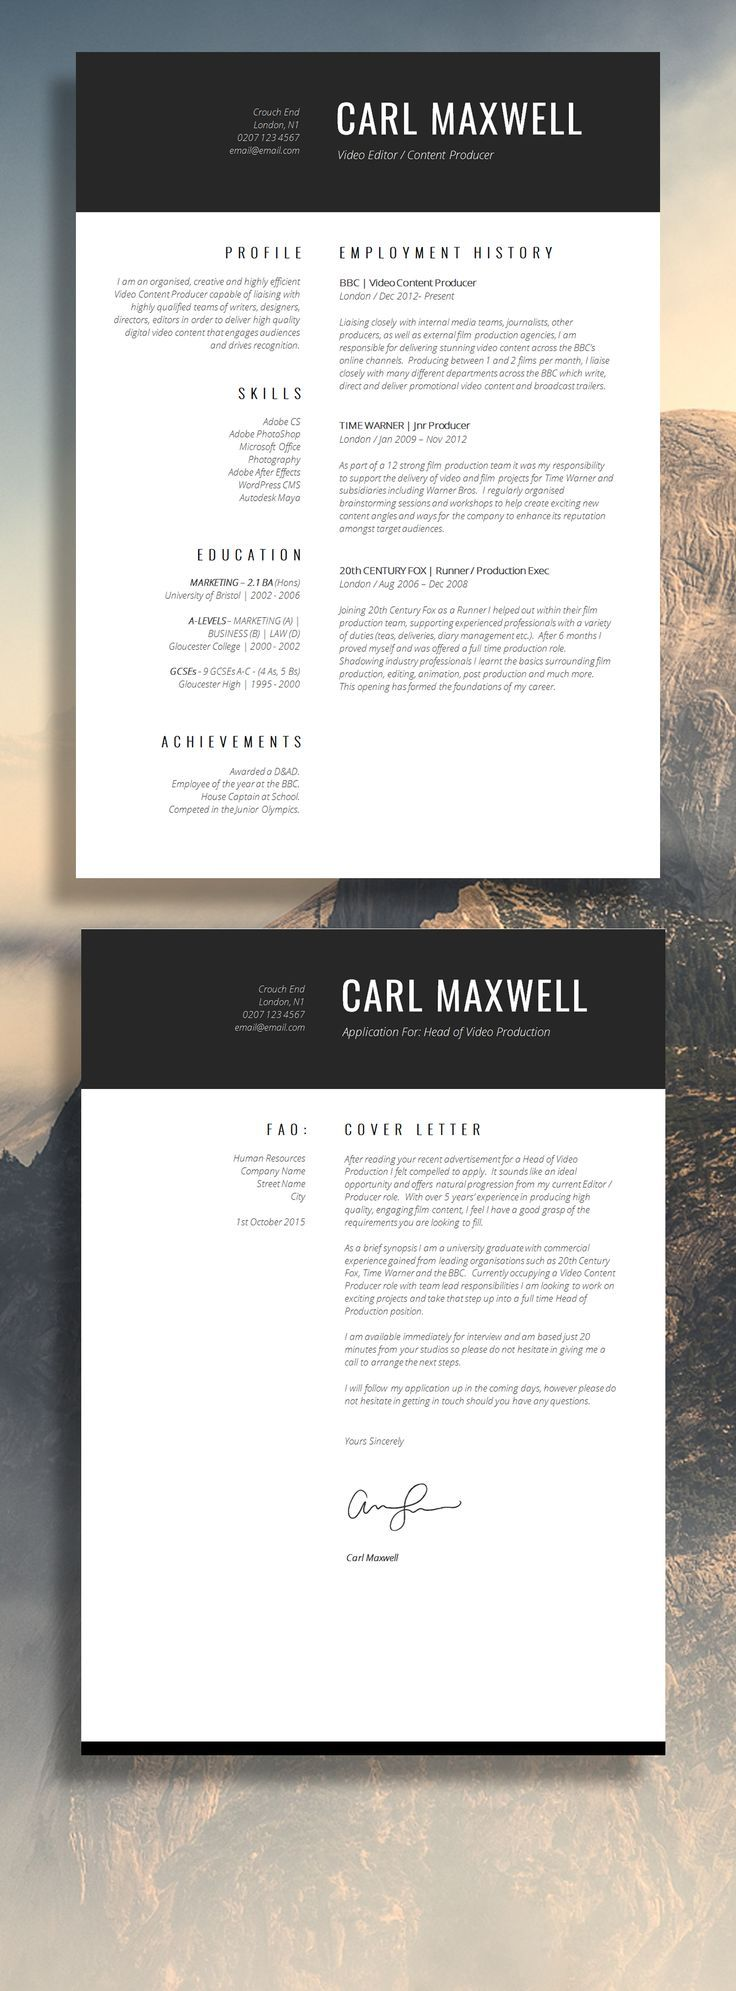 best images about resume designs creative resume professional resume template cv template resume advice cover letter word mac or pc instant digital fair